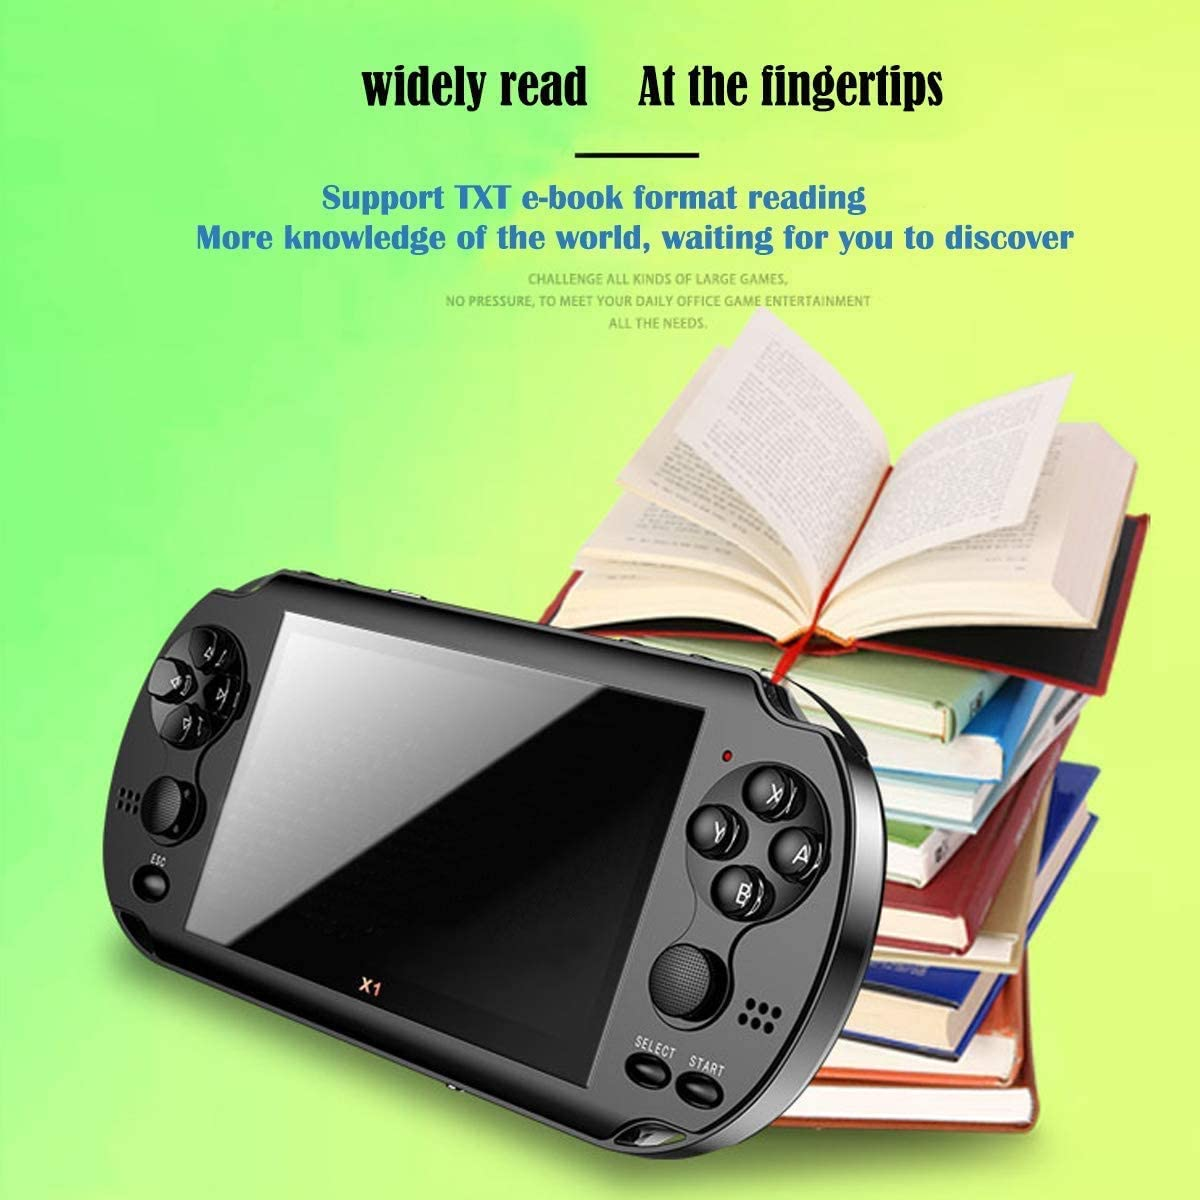 4.3inch HD Screen Retro Video Game Console huasida Handheld Video Game Console Black Nostalgic Game Console for Children and Adults Classic Game Console Portable Video Game